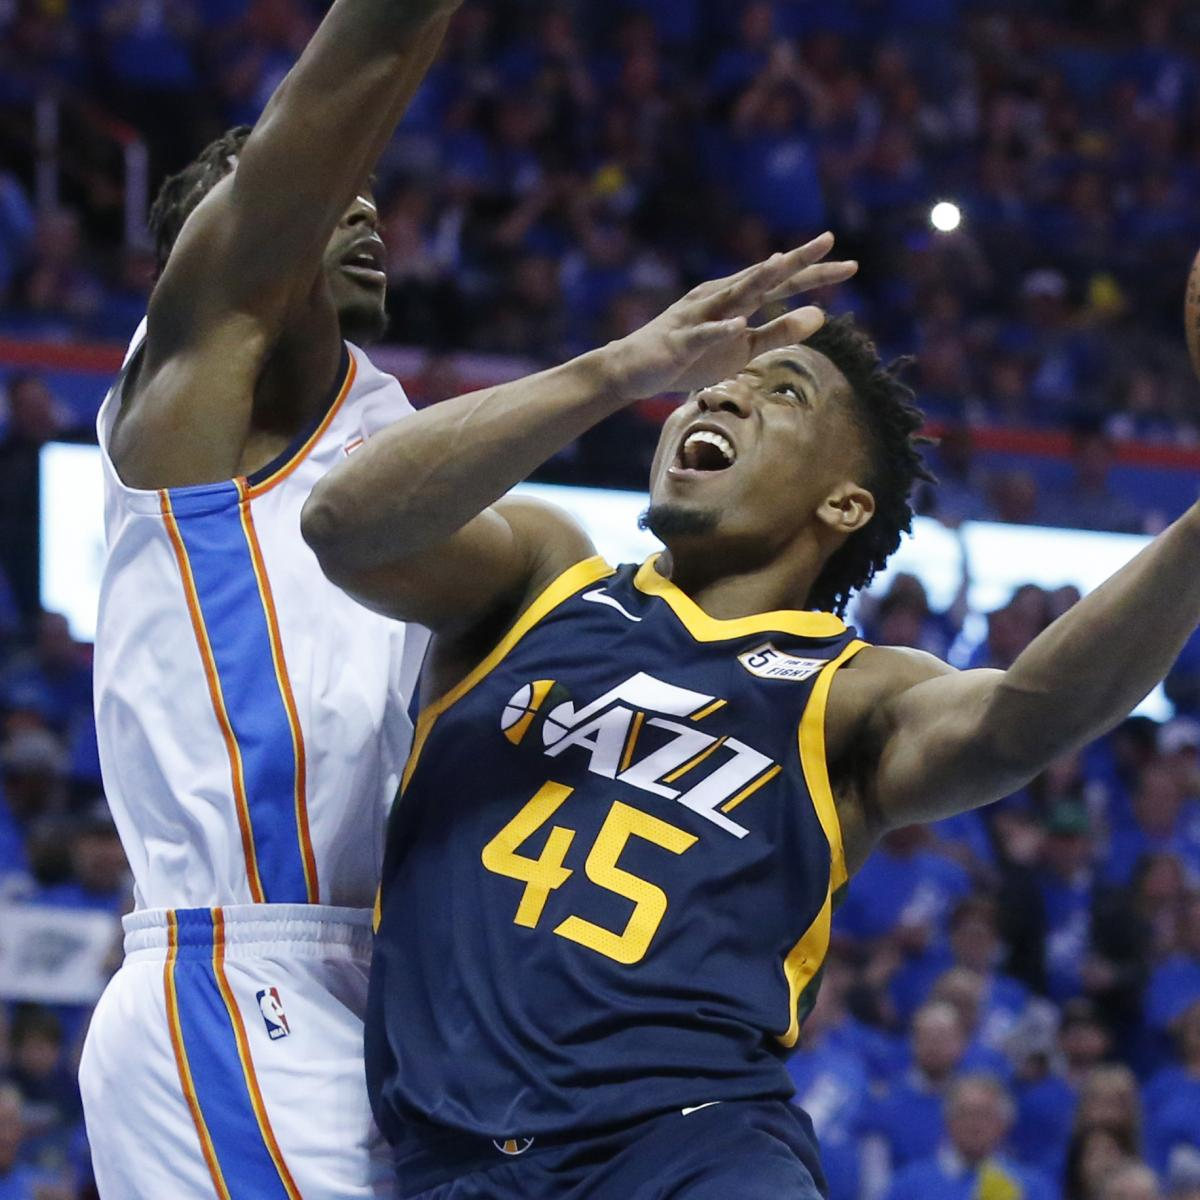 Donovan Mitchell Carried Off During Game 5 Vs. Rockets